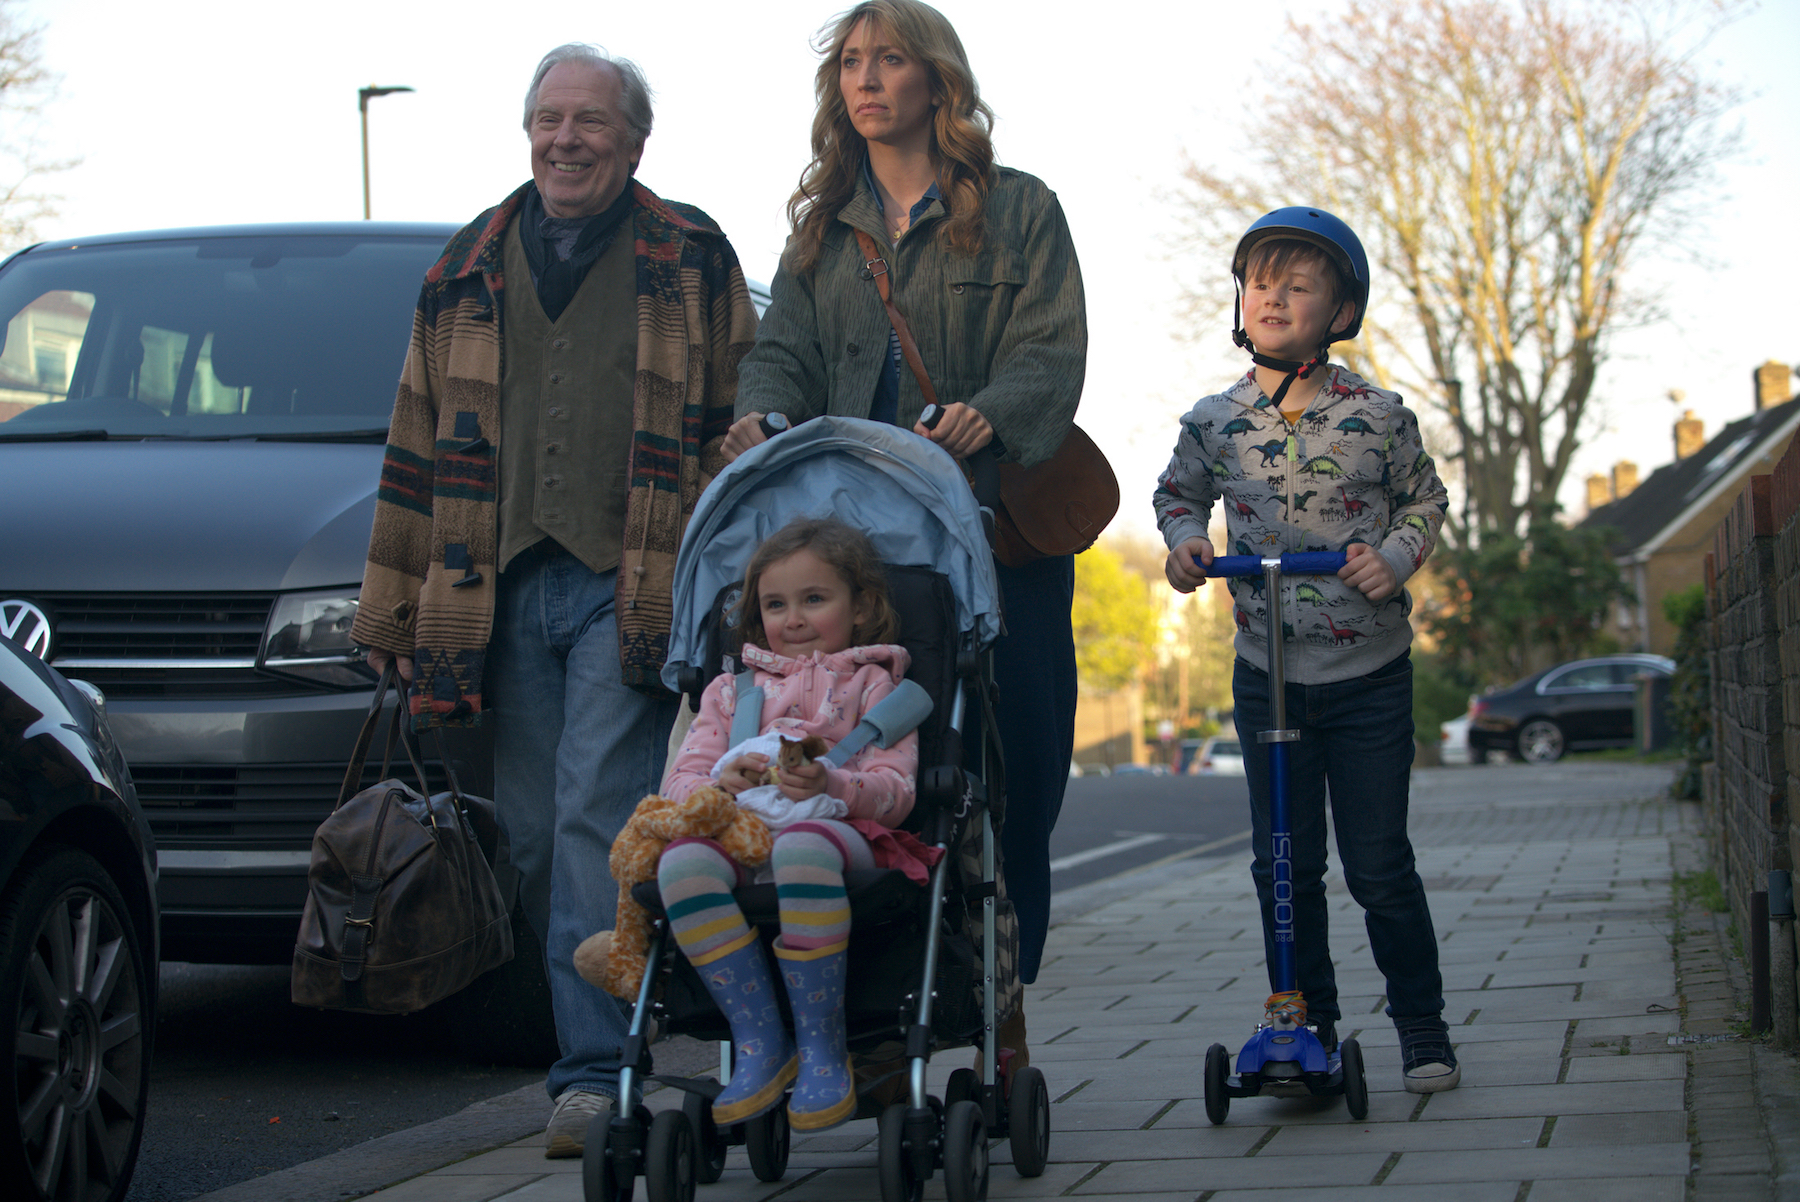 """BREEDERS """"No Places"""" Episode 2 (Airs Monday, March 2) -- Pictured: (l-r) Michael McKeon as Michael, Jayda Eyles as Ava, Daisy Haggard as Ally, George Wakeman as Luke. CR: Miya Mizuno/FX"""